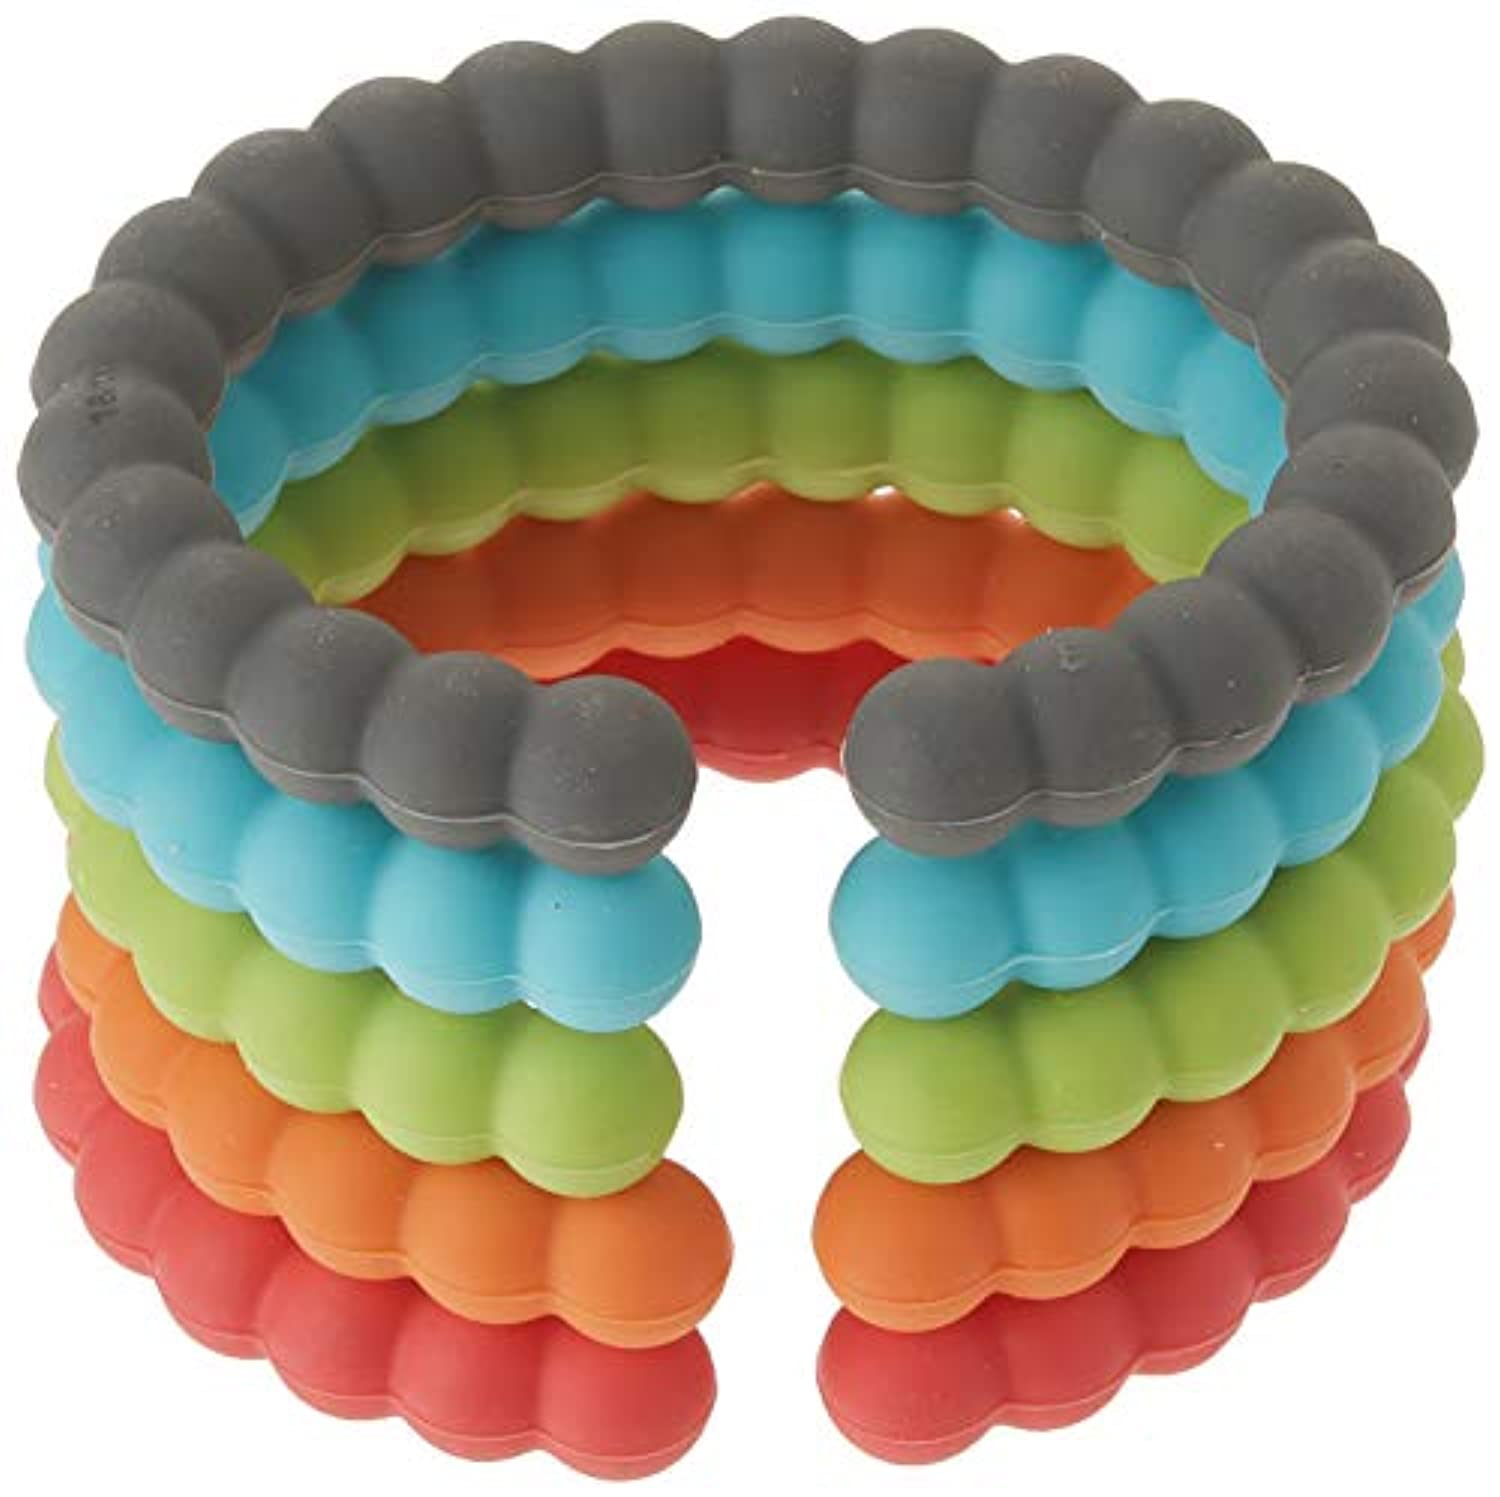 CB GO by Chewbeads Silicone Links, 100% Safe Silicone by Chewbeads